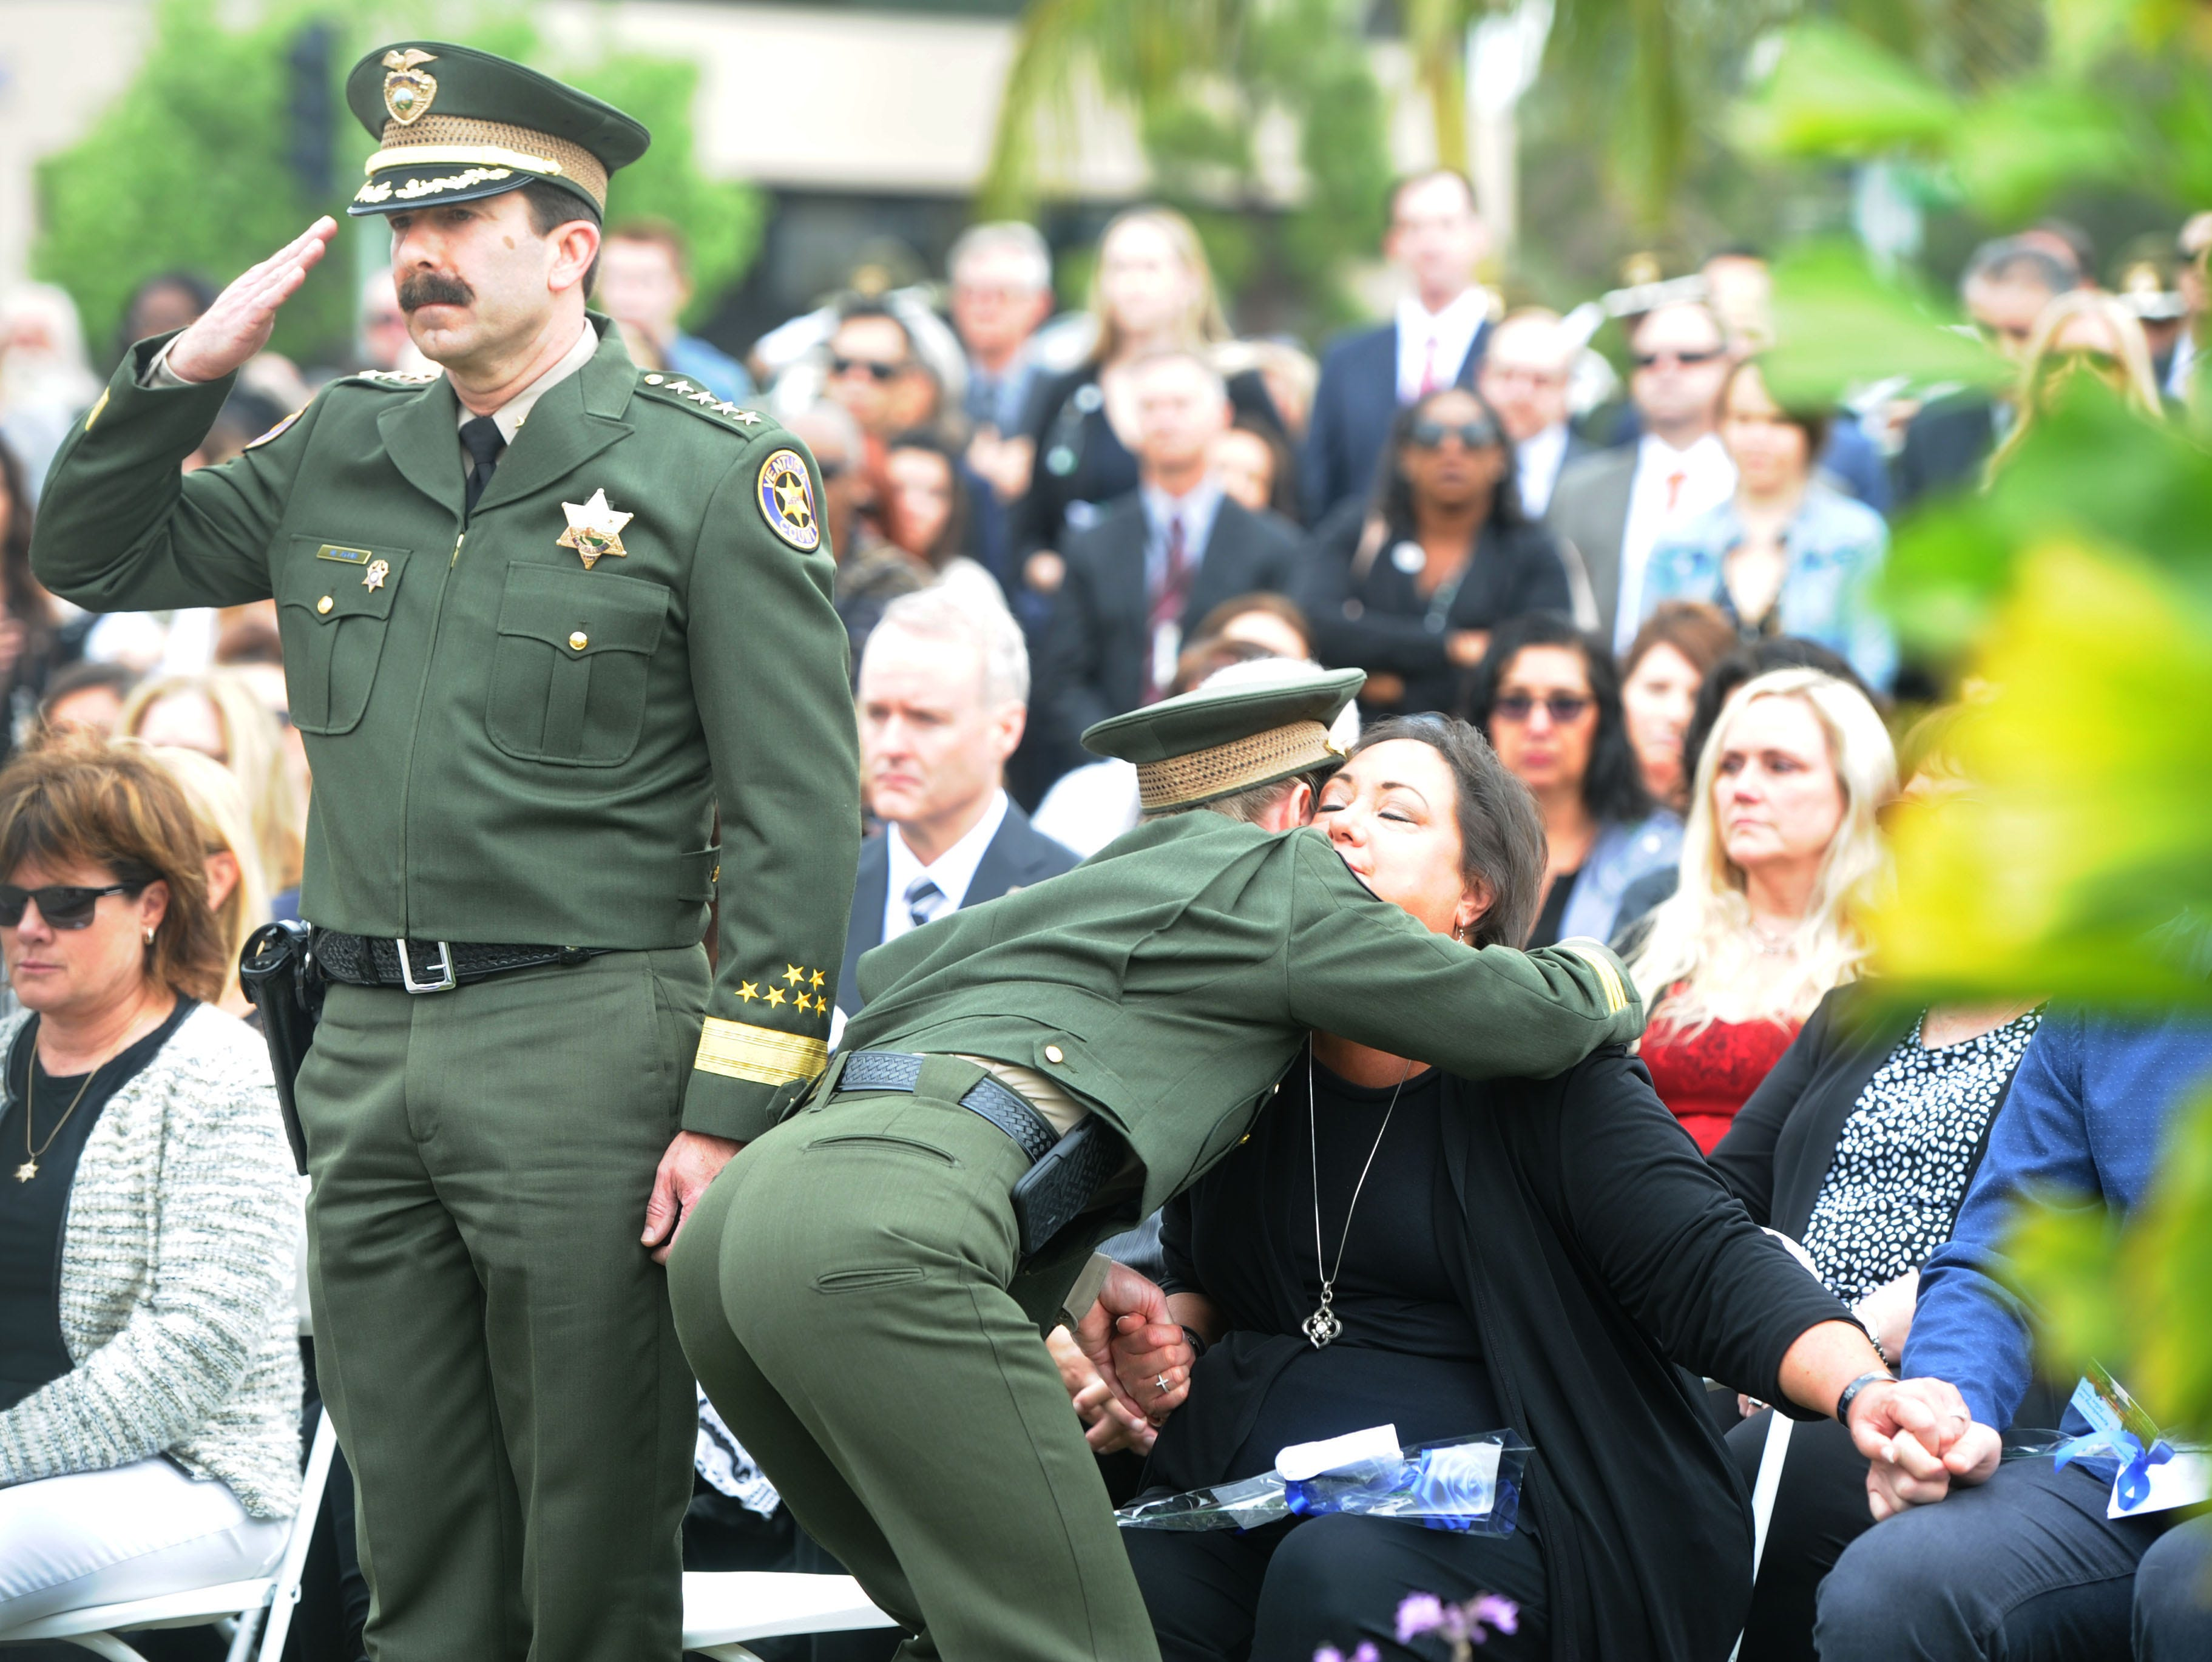 Ventura County Sheriff Bill Ayub, left, salutes as Undersheriff Monica McGrath hugs Karen Helus at the Ventura County Peace Officers Memorial. The late Sgt. Ron Helus was among those honored in a ceremony Thursday at the Ventura County Government Center.